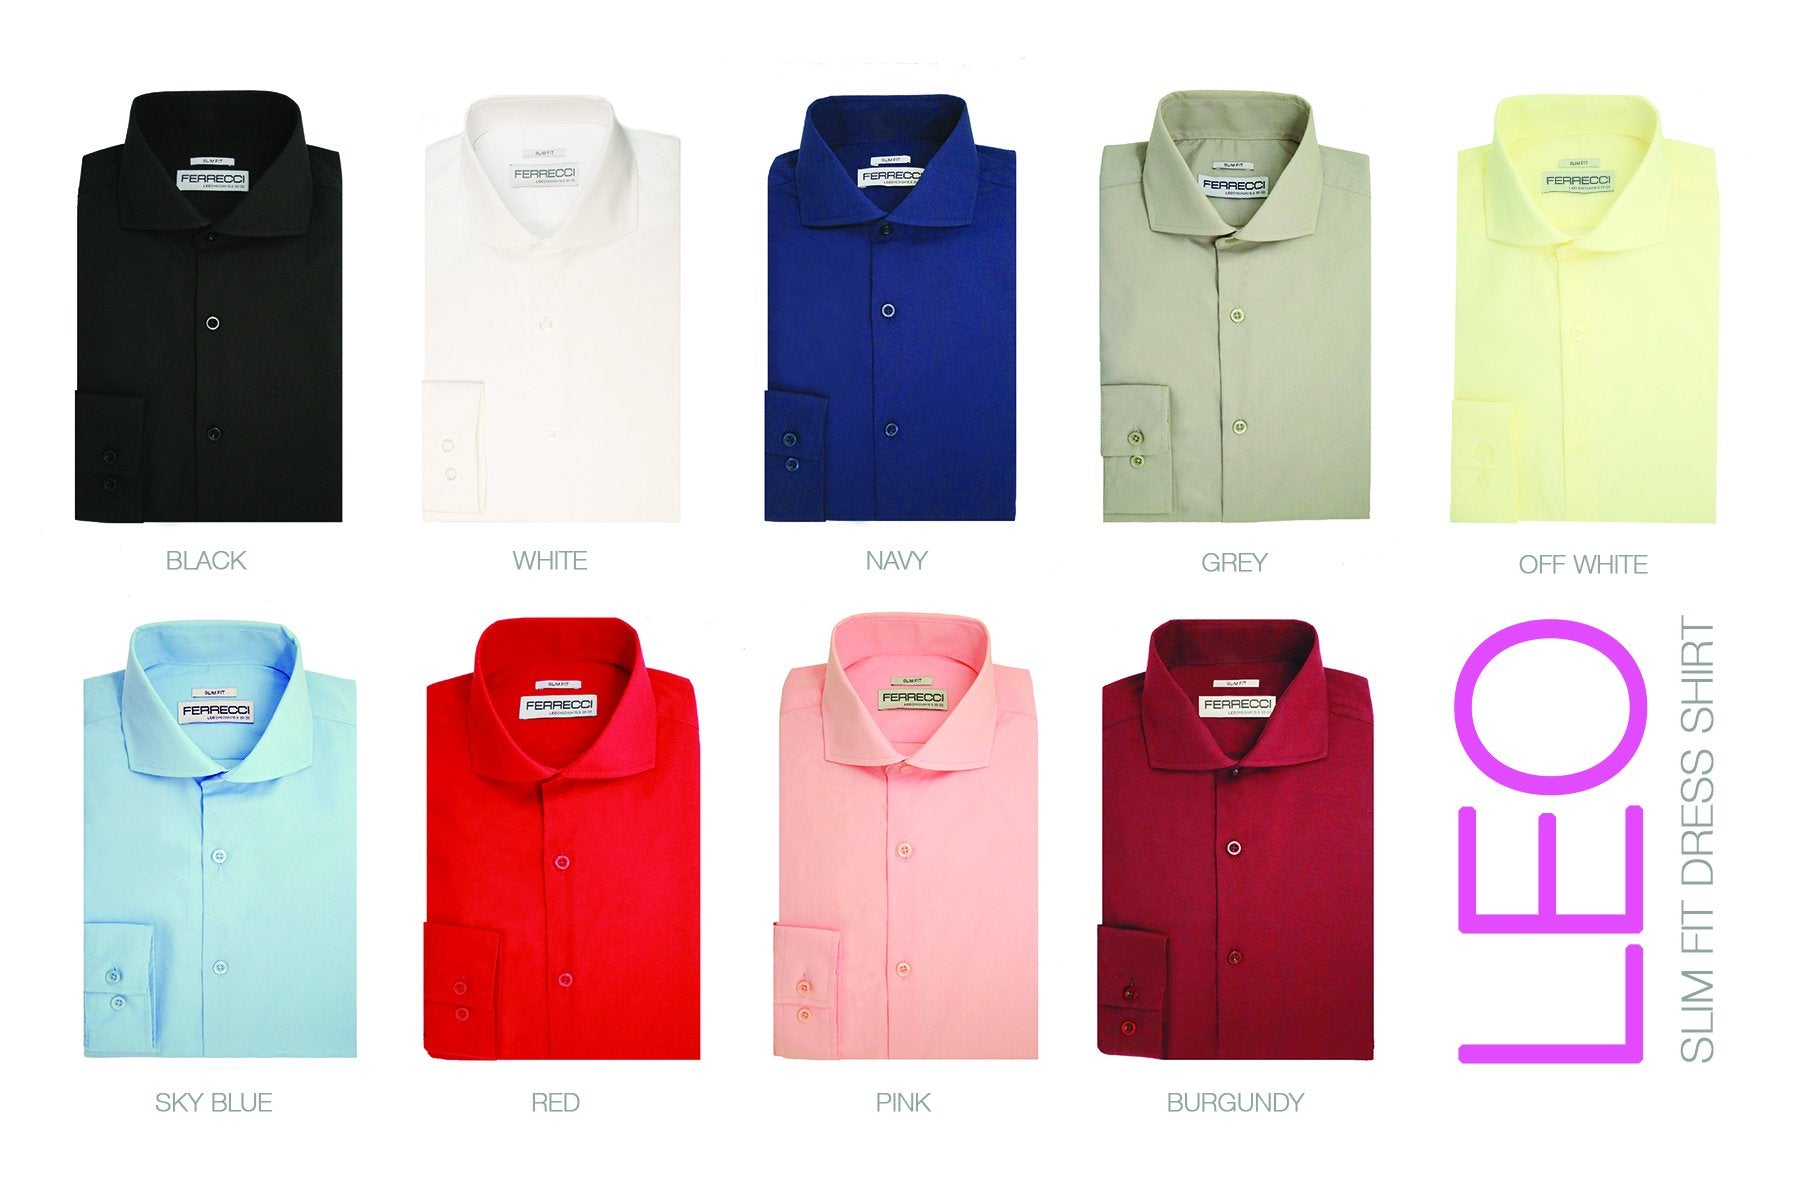 Get 5 Leo Shirts for only $99 - Giorgio's Menswear